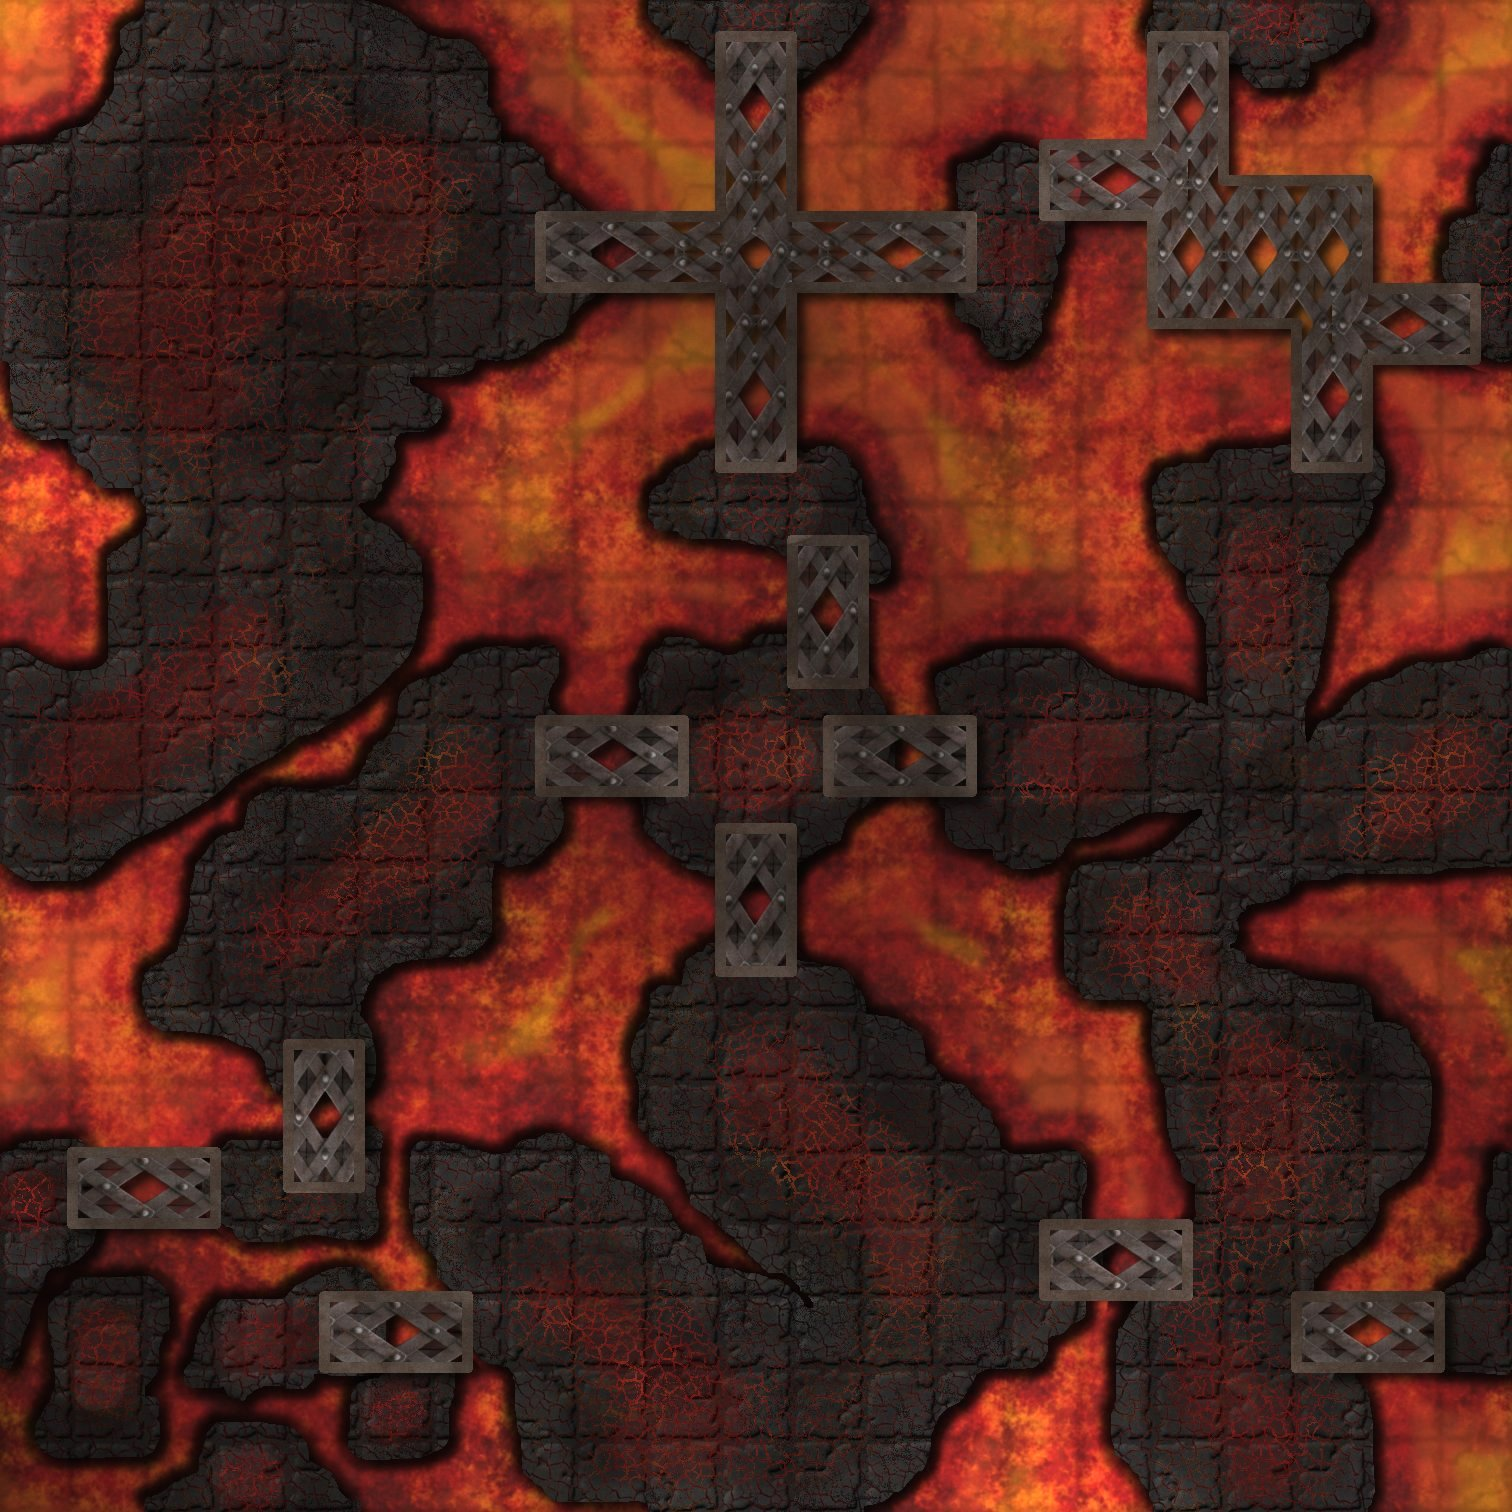 Incendium_full_map.jpg